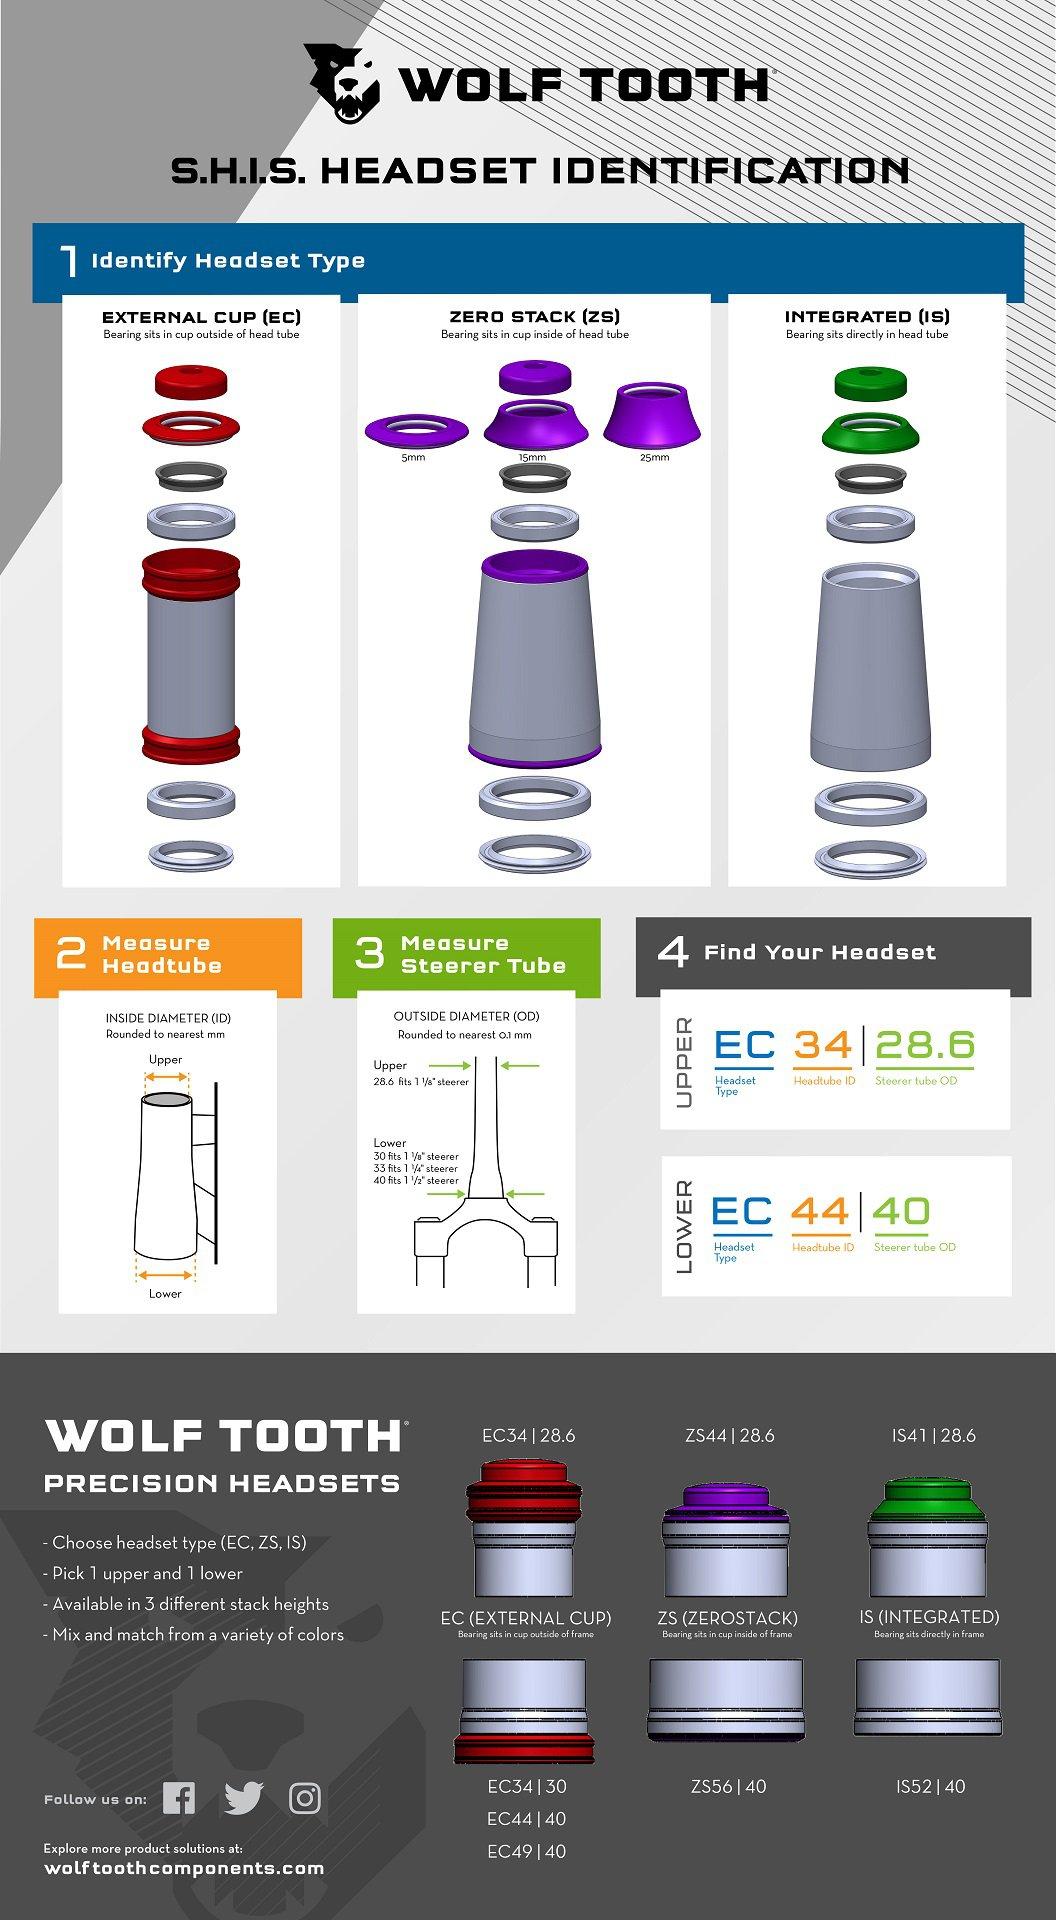 Wolf Tooth Headset